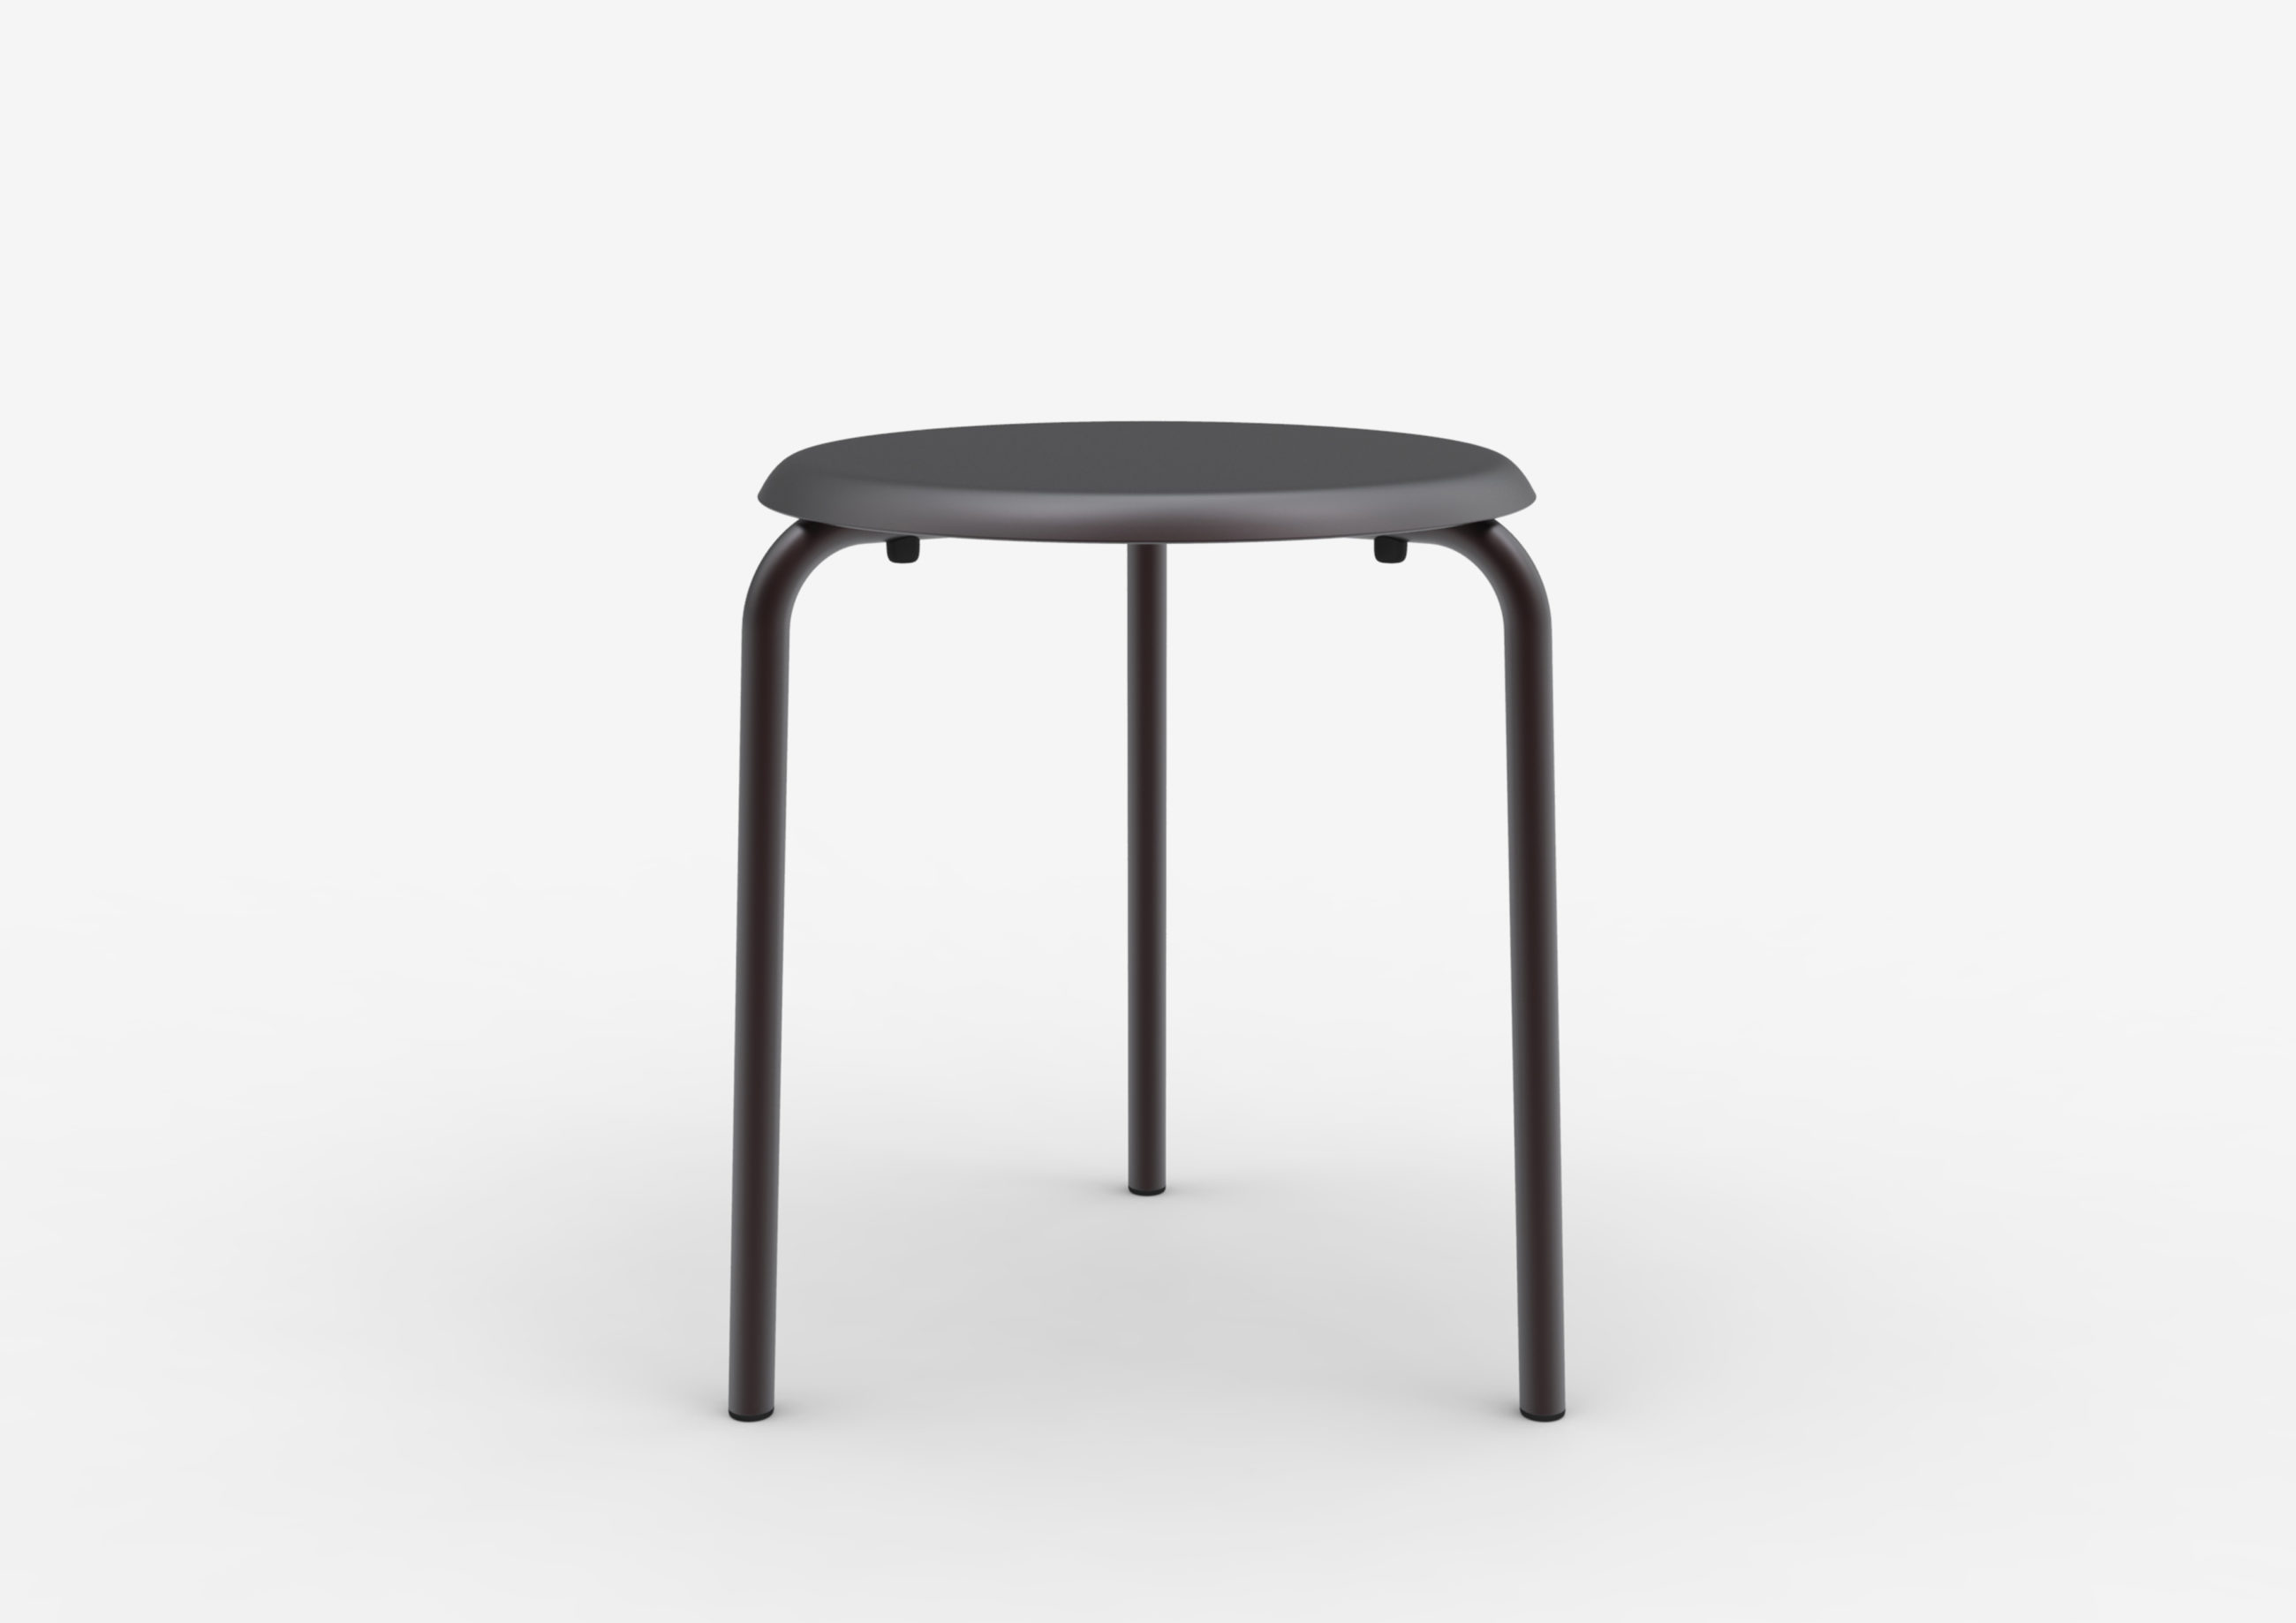 TUBE ROUNDED TABLE